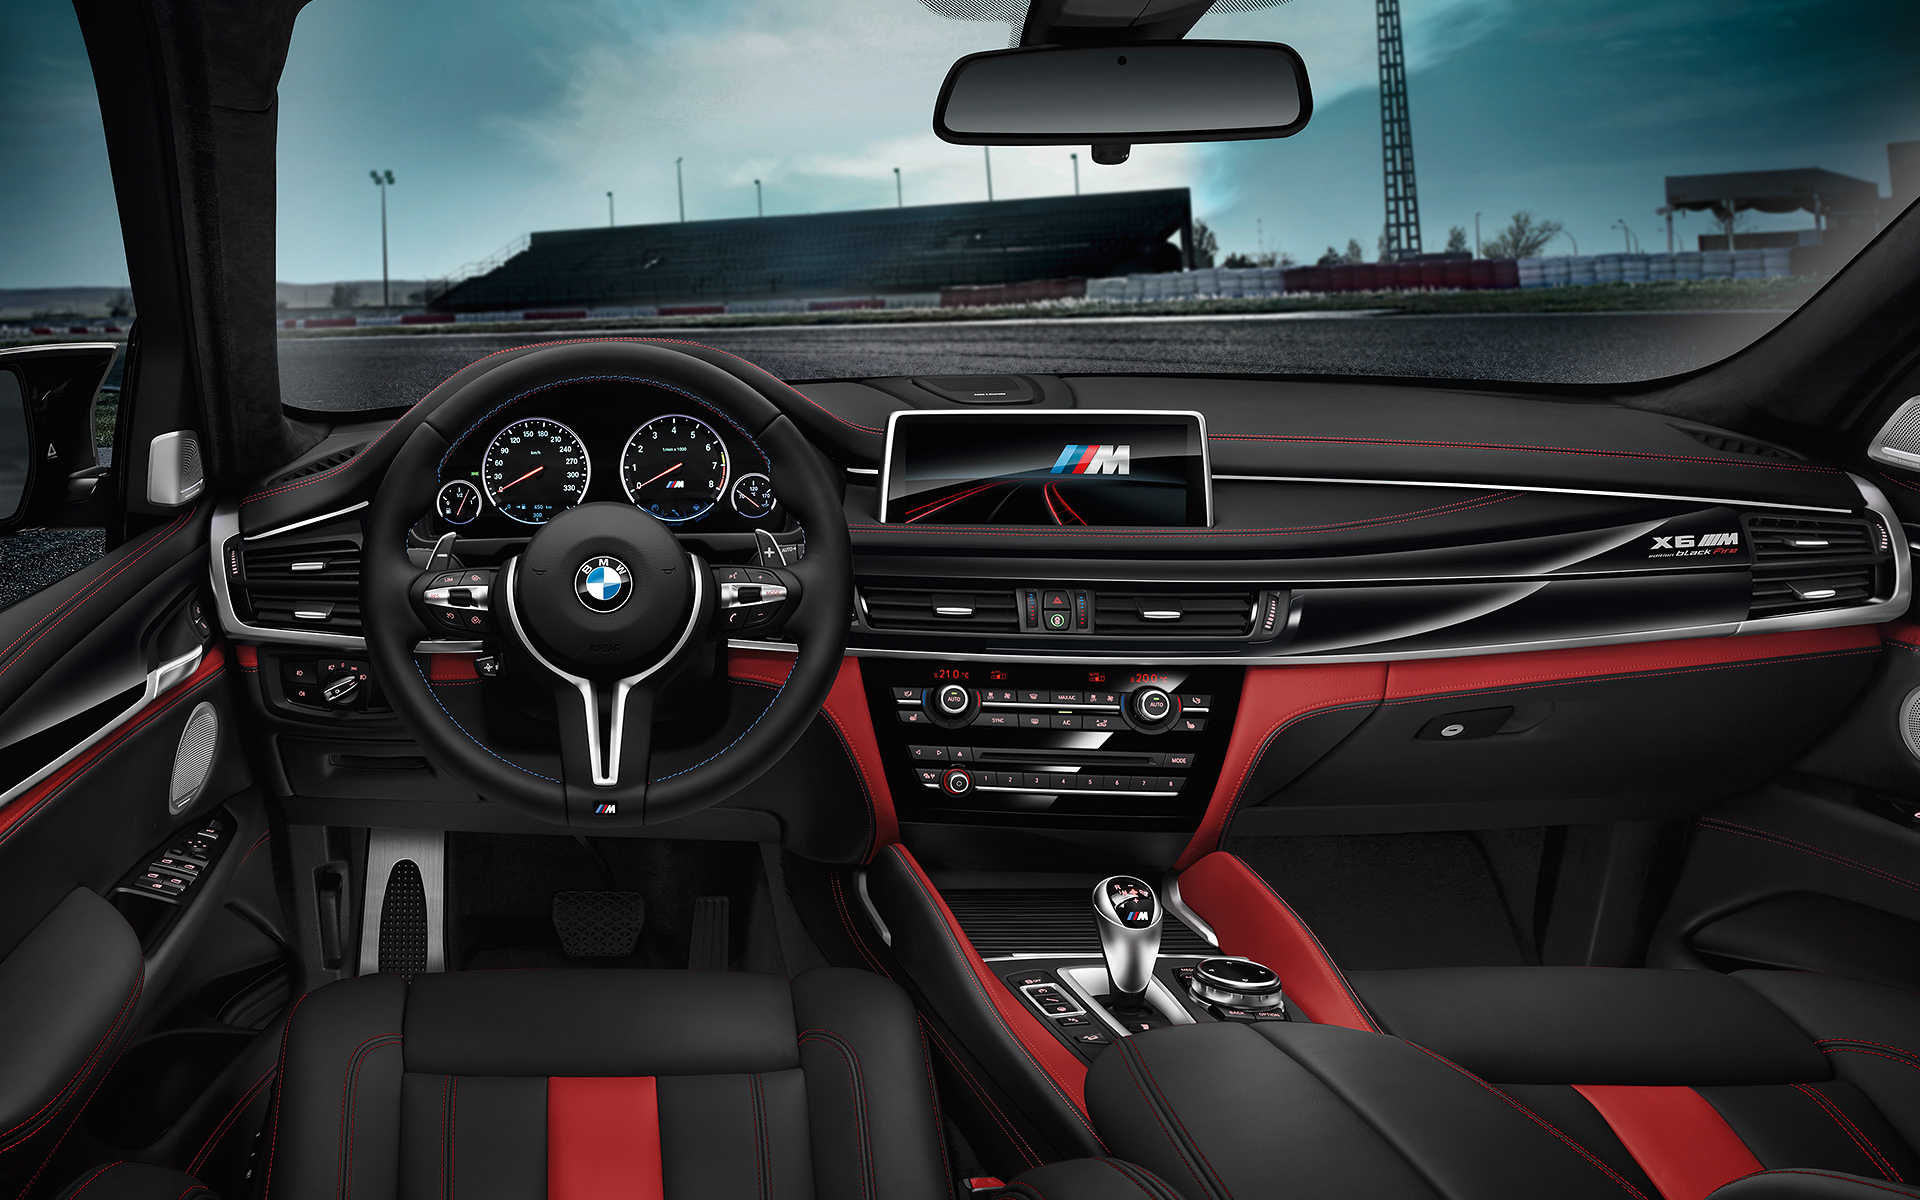 Edition Black Fire of the BMW X5 M and the BMW X6 M, Individual